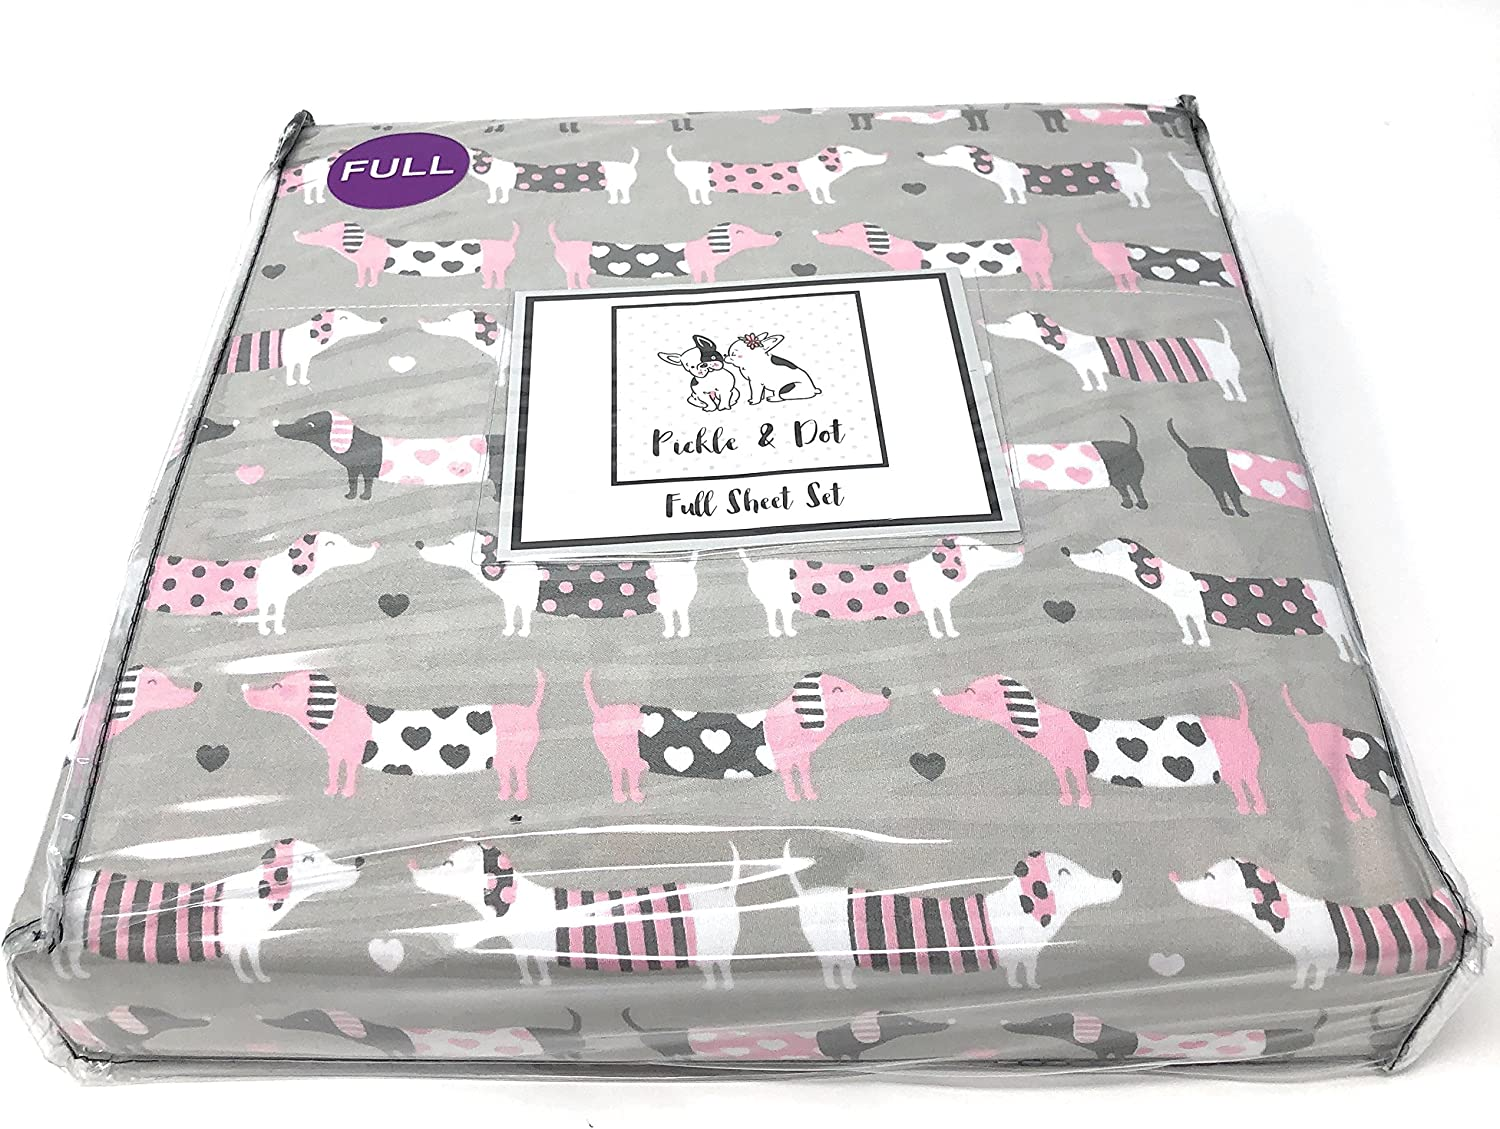 Mila /& Molly Pink and Grey Dachshund Sheet Set with Doxie aka Wiener Dogs Full of Hearts Twin